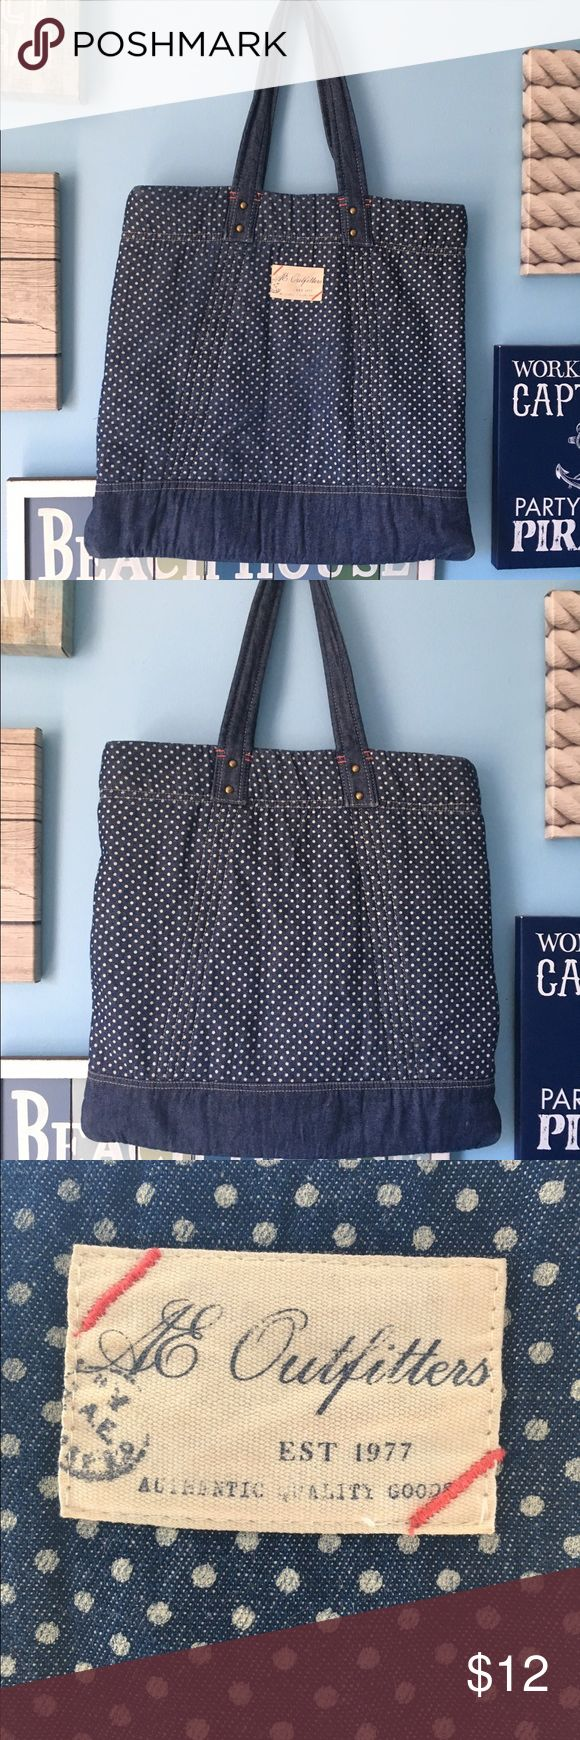 American Eagle Polka Dot Tote Bag Navy and white polka dot bag that's perfect for spring 🌸😌🌸 has straps on the inside to tie down anything you don't want escaping. Slight fading on the front, but not very noticeable American Eagle Outfitters Bags Totes